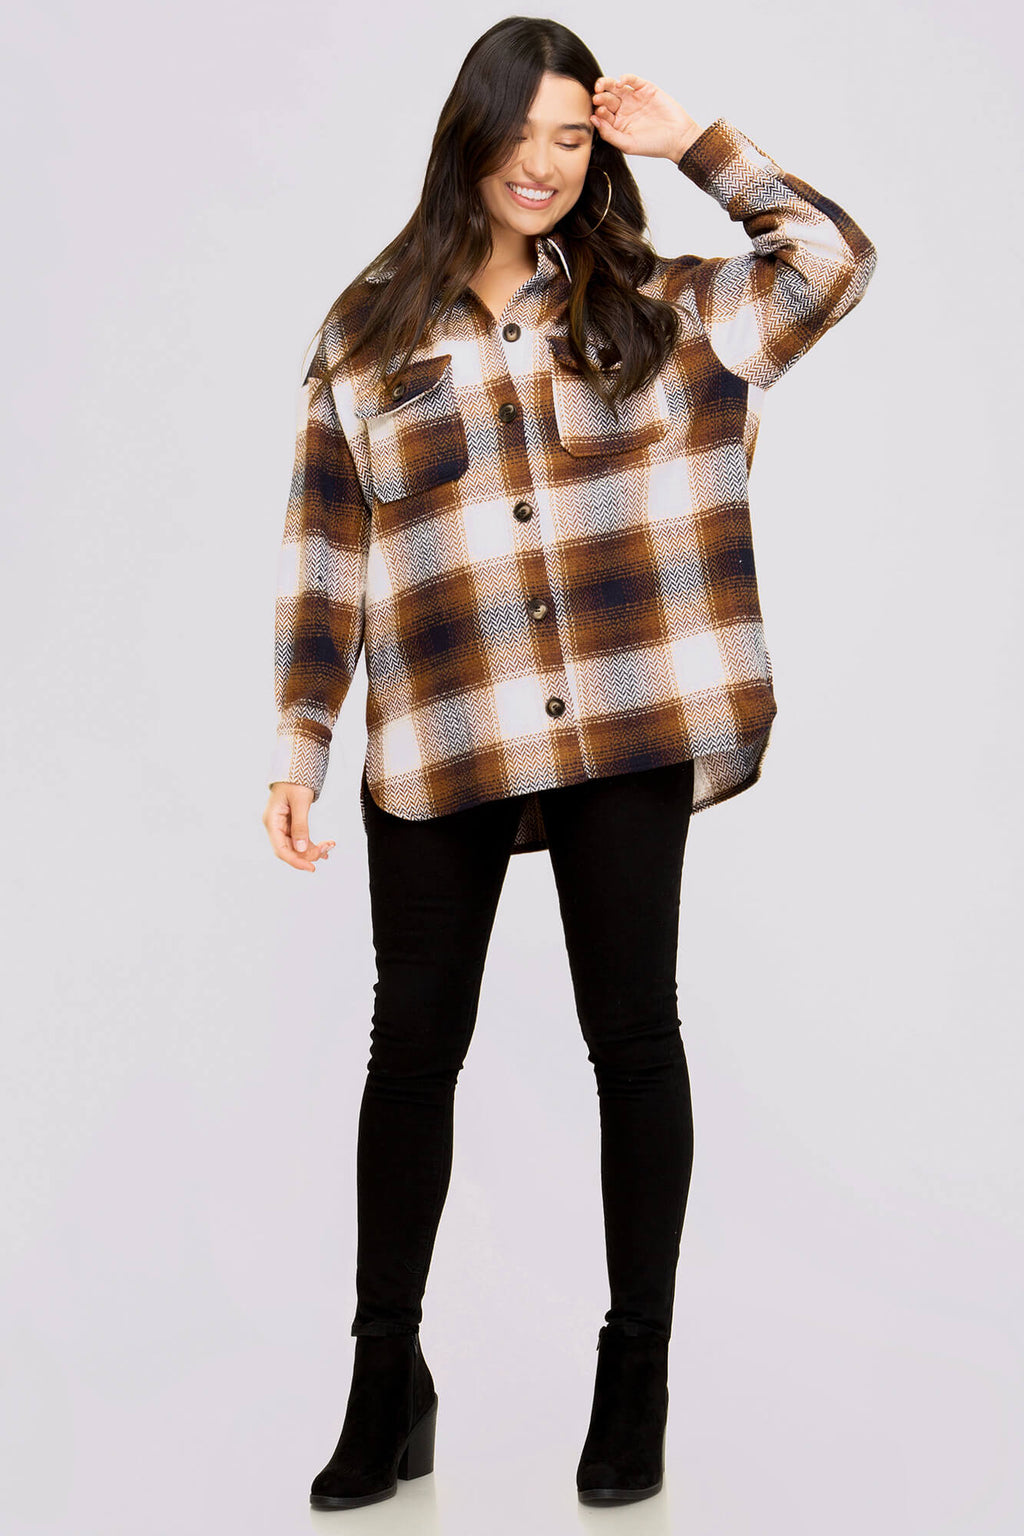 Channel the Flannel Oversized Jacket